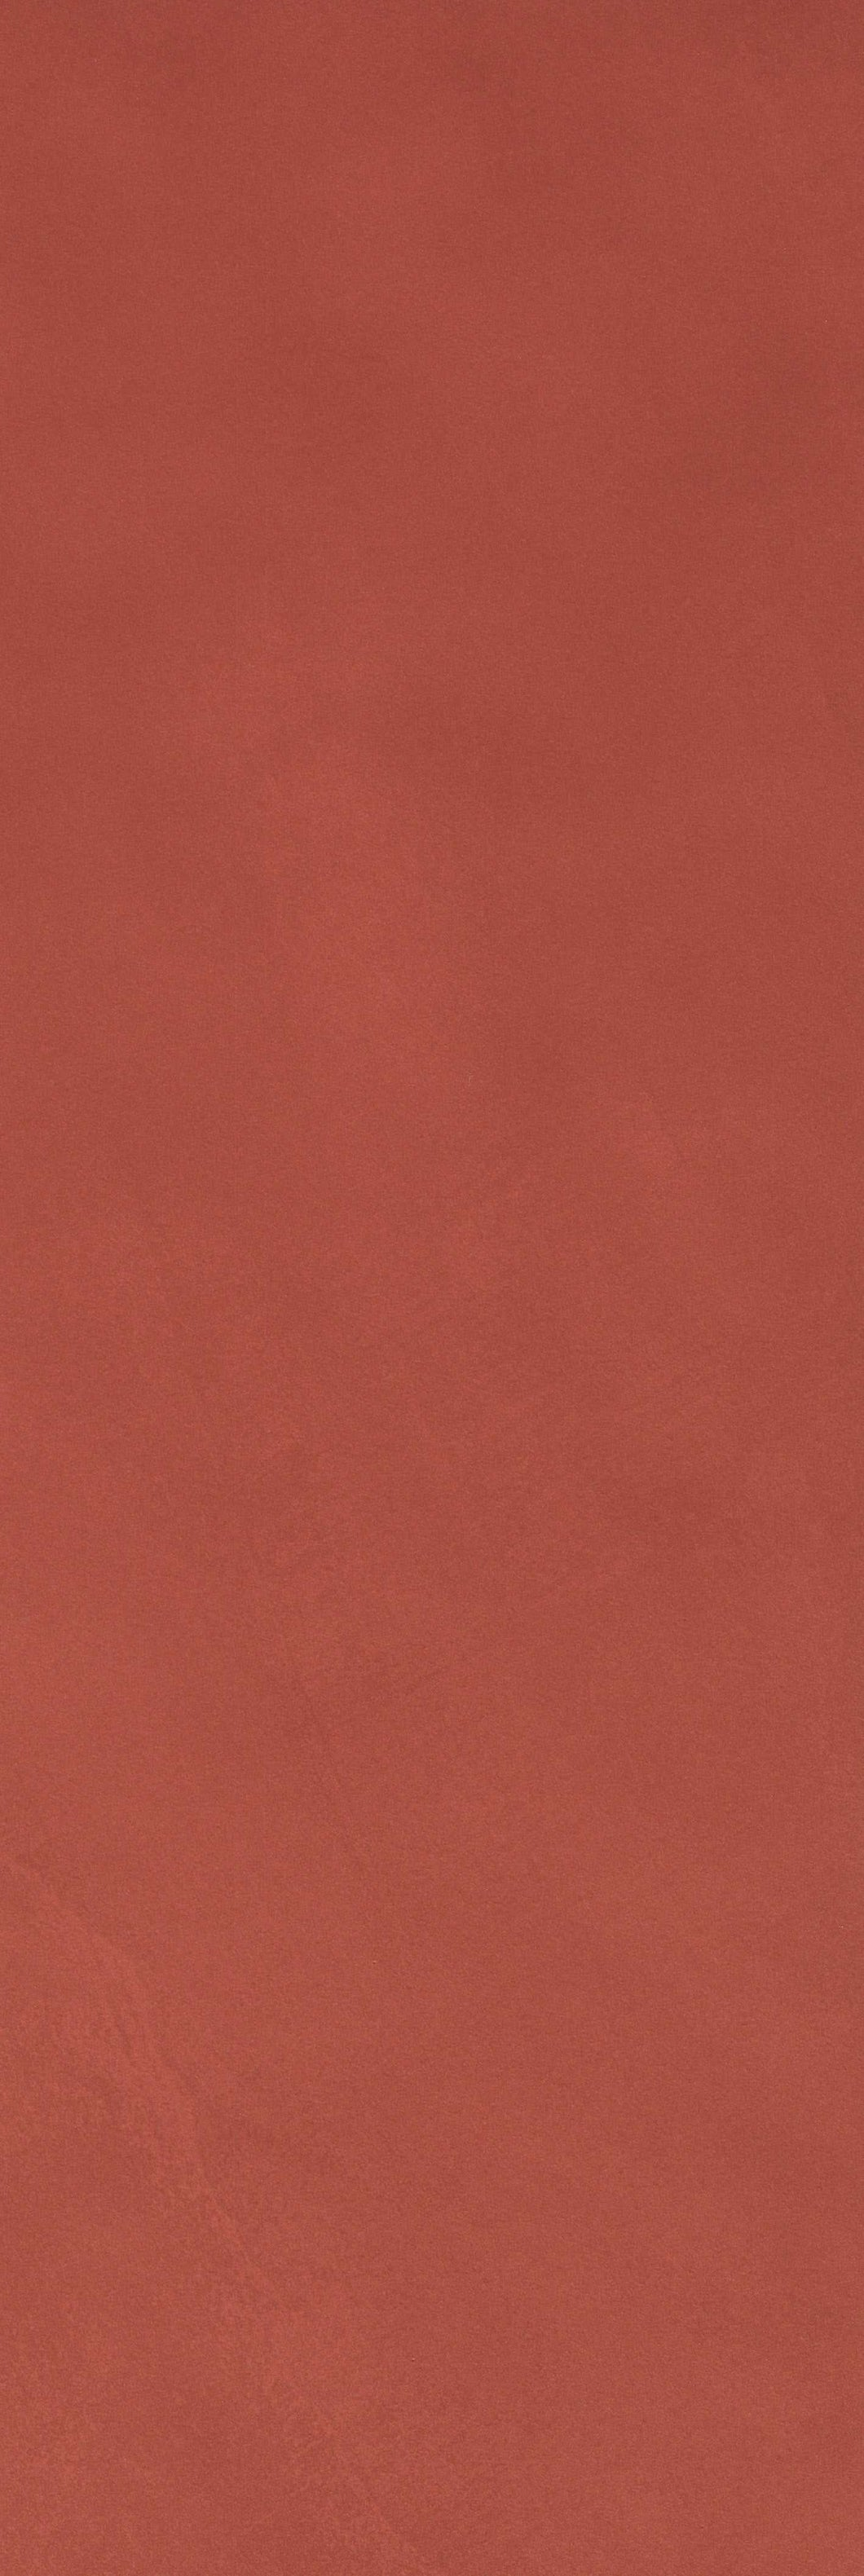 Marsala Terracotta Matt Rectangle Floor Wall Tiles | Grand Taps